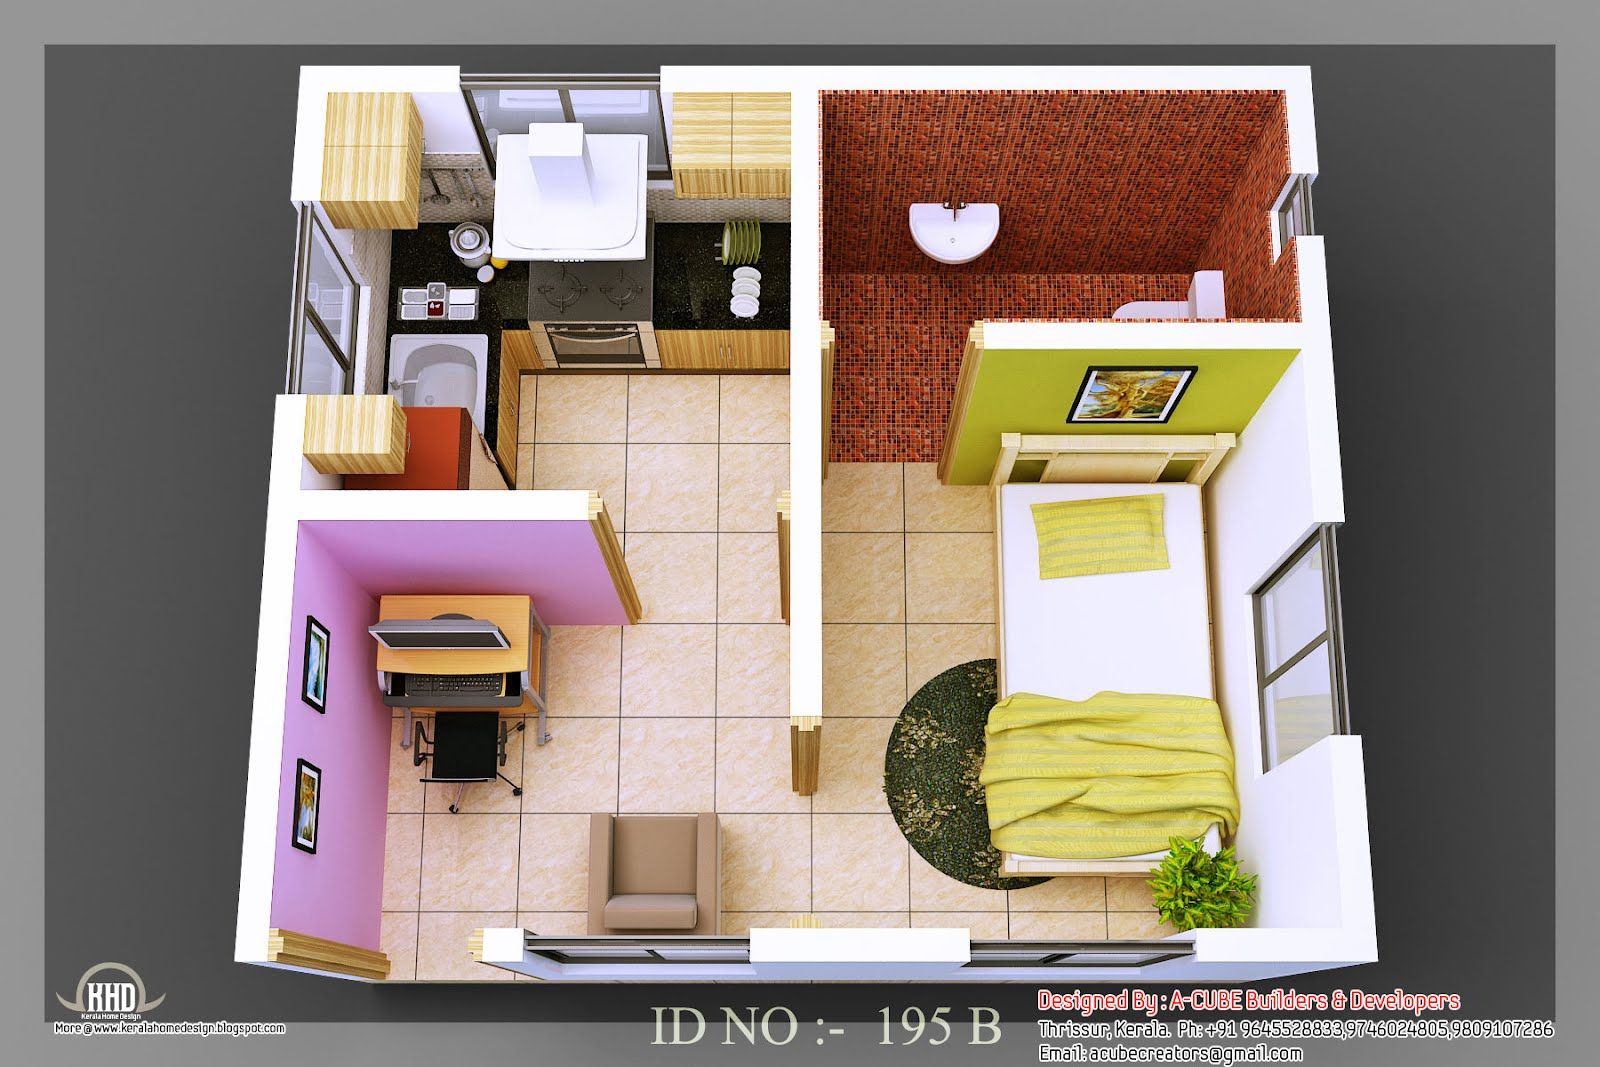 Small Home Designs modern small house plans best small house plans Isometric Views Small House Plans Kerala Home Design Floor Information Isometric Small House Plans